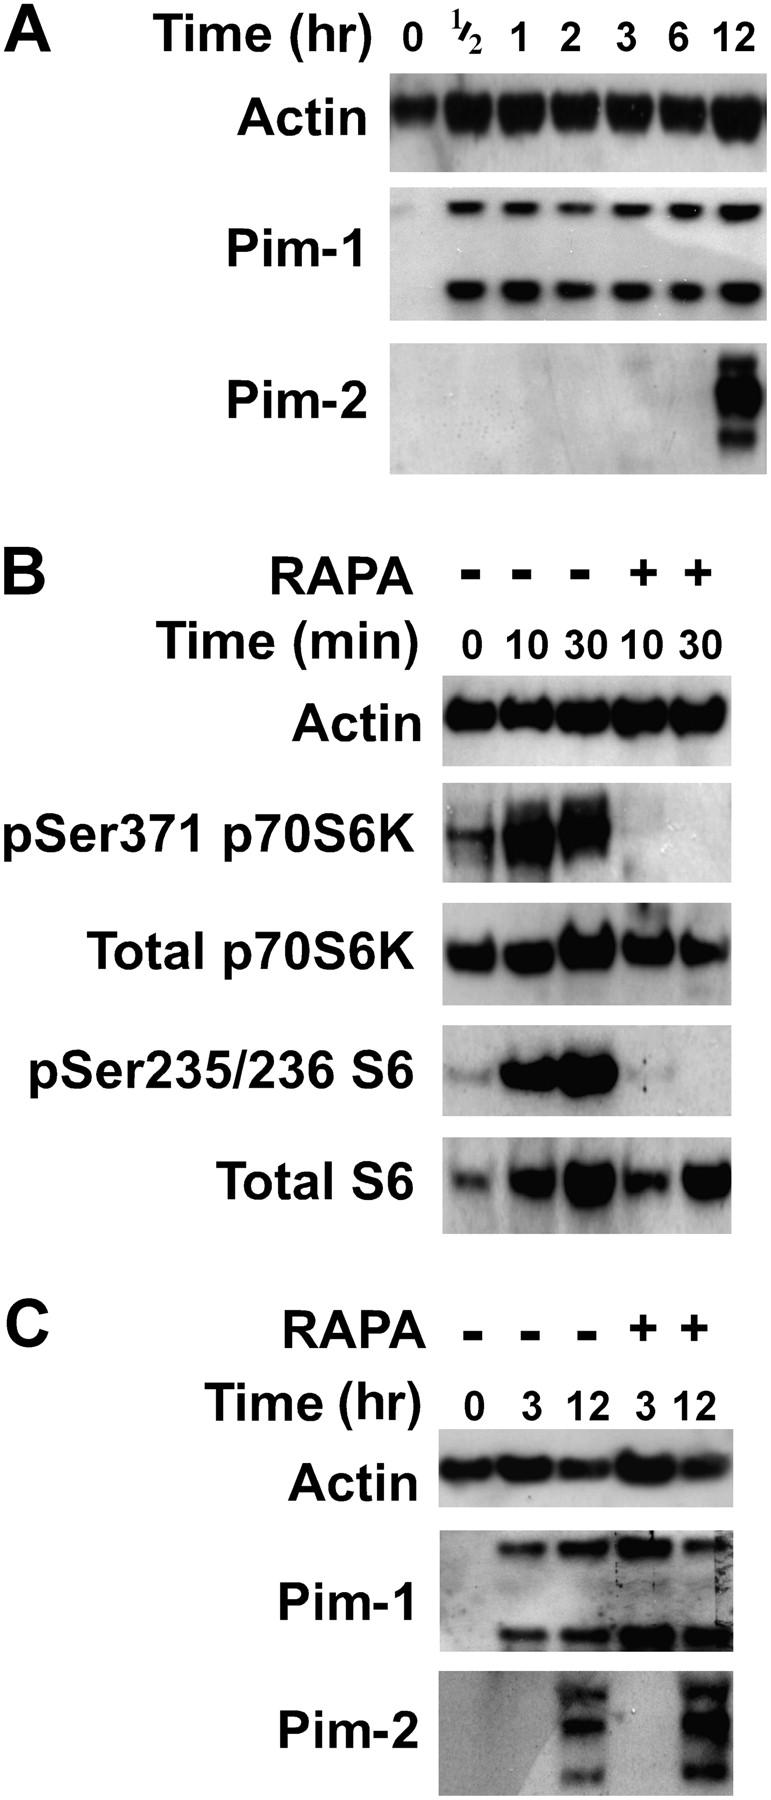 The Pim kinases confer rapamycin-resistant T cell blastogenesis. (A) C57BL/6 splenic T cells were activated by αCD3/αCD28 and lysates were prepared after 0, 1/2, 1, 2, 3, 6, and 12 h of stimulation and serially probed for the expression of actin, Pim-1, and Pim-2 proteins by Western blot. (B) Activation-induced p70S6K and S6 phosphorylation is rapamycin sensitive. C57BL/6 splenic T cells were preincubated for 1 h in the presence (+) or absence (−) of 50 nM RAPA and activated with αCD3/αCD28 for 0, 10, and 30 min. Lysates were probed for actin, phospho-serine 371-p70 S6 kinase (pSer371 p70S6K), total p70S6K, phospho-serine 235/serine 236-S6 (pSer235/236 S6), and total S6 expression. (C) In the experiments described in B, Western blots were also performed with lysates from rapamycin-treated and control cells after 3 and 12 h of activation and probed for actin, Pim-1, and Pim-2 expression. (D) Splenic T cells from Pim-1 +/+ 2 +/+ , Pim-1 −/− 2 +/+ , Pim-1 +/+ 2 −/− , and Pim-1 −/− 2 −/− mice were activated by αCD3/αCD28 in the absence (−) or presence (+) of 25 nM RAPA (key). Control cells were cultured with αCD28 only (αCD28). After 2 d of culture, forward scatter, and surface CD69, CD25, and CD62L expression was assessed. (E) Cell cycle was assessed in the Pim-1 +/+ 2 +/+ and Pim-1 −/− 2 −/− T cells described in D by BrdU incorporation analysis. The percentage of cells in the G 1 (2N-PI + BrdU − ; bottom left), S (PI + BrdU + ; top), and G 2 M (4N-PI + BrdU − ; bottom right) phases of the cell cycle is shown (insets). Results shown are representative of six experiments. (F)5-(and 6-)carboxyfluorescein diacetate, succinimidyl ester–labeled input T cells from Pim-1 +/+ 2 +/+ or Pim-1 −/− 2 −/− mice were activated for 4 d in the presence (+) or absence (−) of 25 nM RAPA. Control cells were cultured with αCD28 only for 2 d (αCD28) and showed no decay in fluorescence relative to input cells at day 0. Numbers above the leftmost brackets represent the percent of cells that had divided more than three generations. For Pim-1 −/− 2 −/− cells, the majority of the input population failed to divide (*). Data are representative of three experiments.